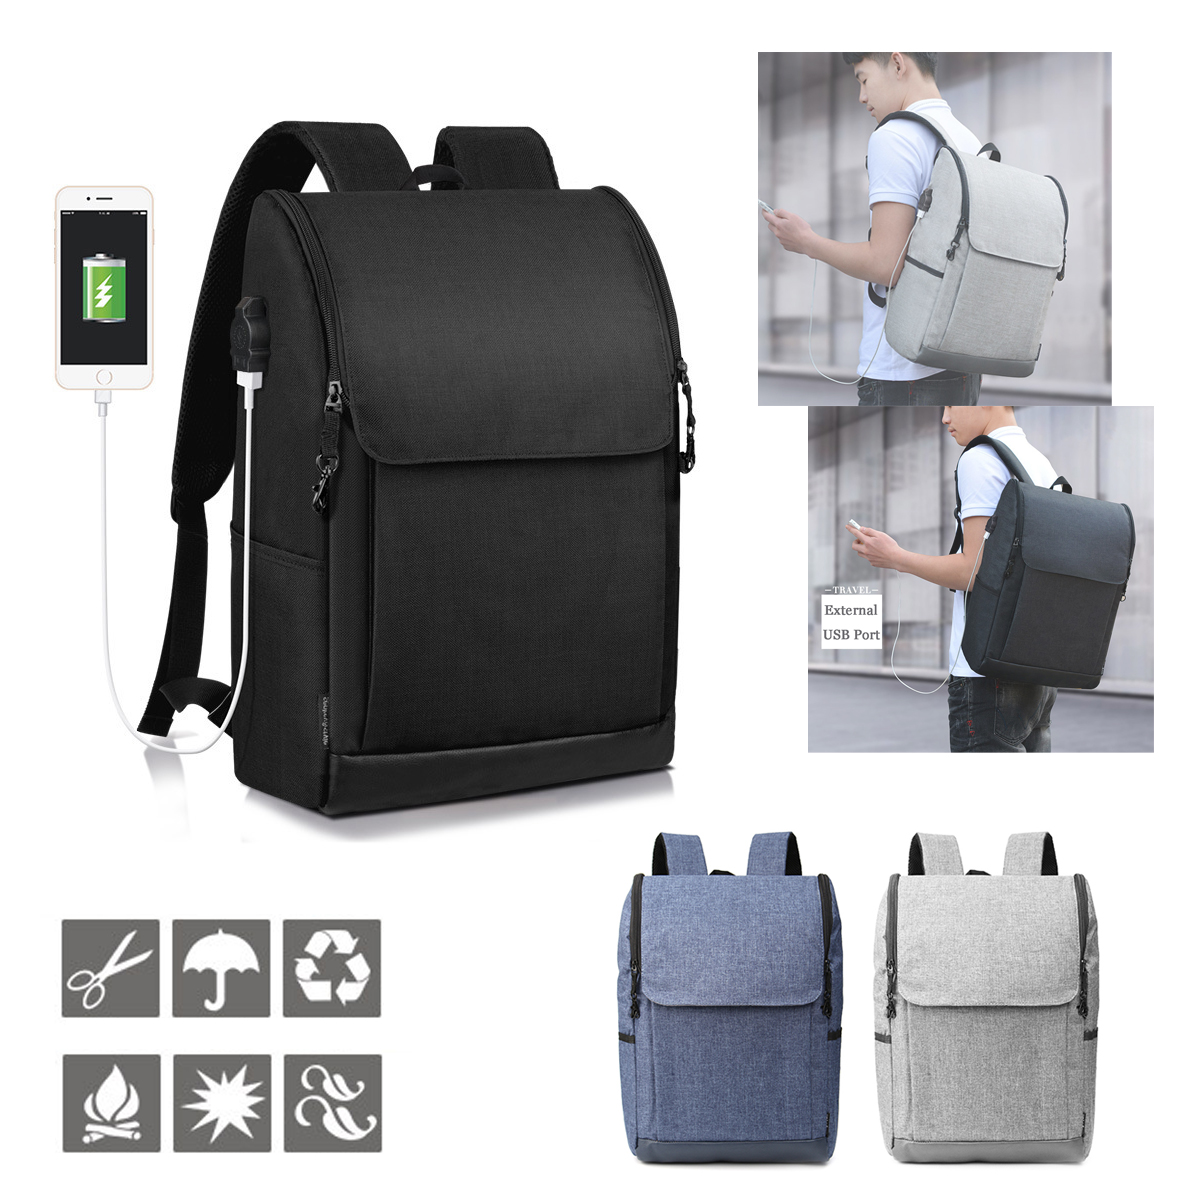 Travel Rucksack Anti Theft Backpack With Usb Charge Port Waterproof Laptop Travel Rucksack School Bag Redwood And Stream Camp Supplies